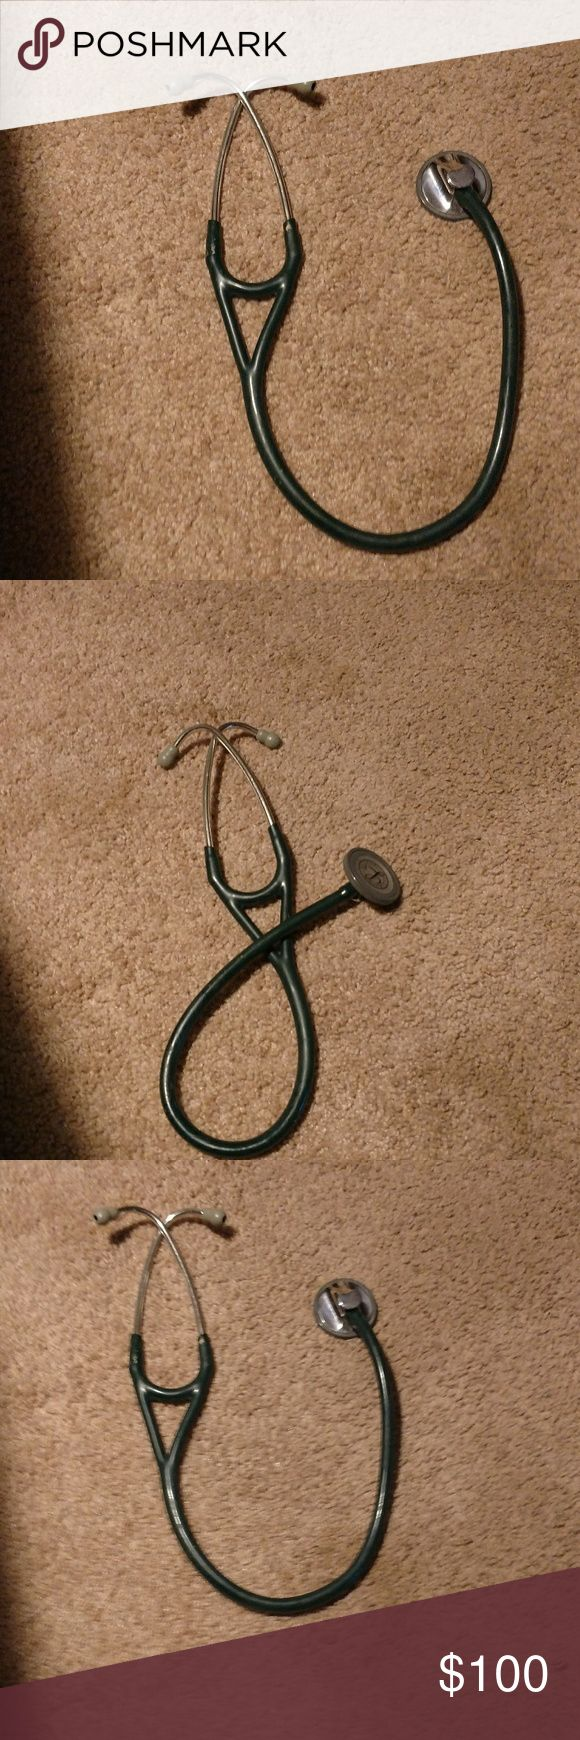 Littman Master Cardiology Stethoscope Great condition Other